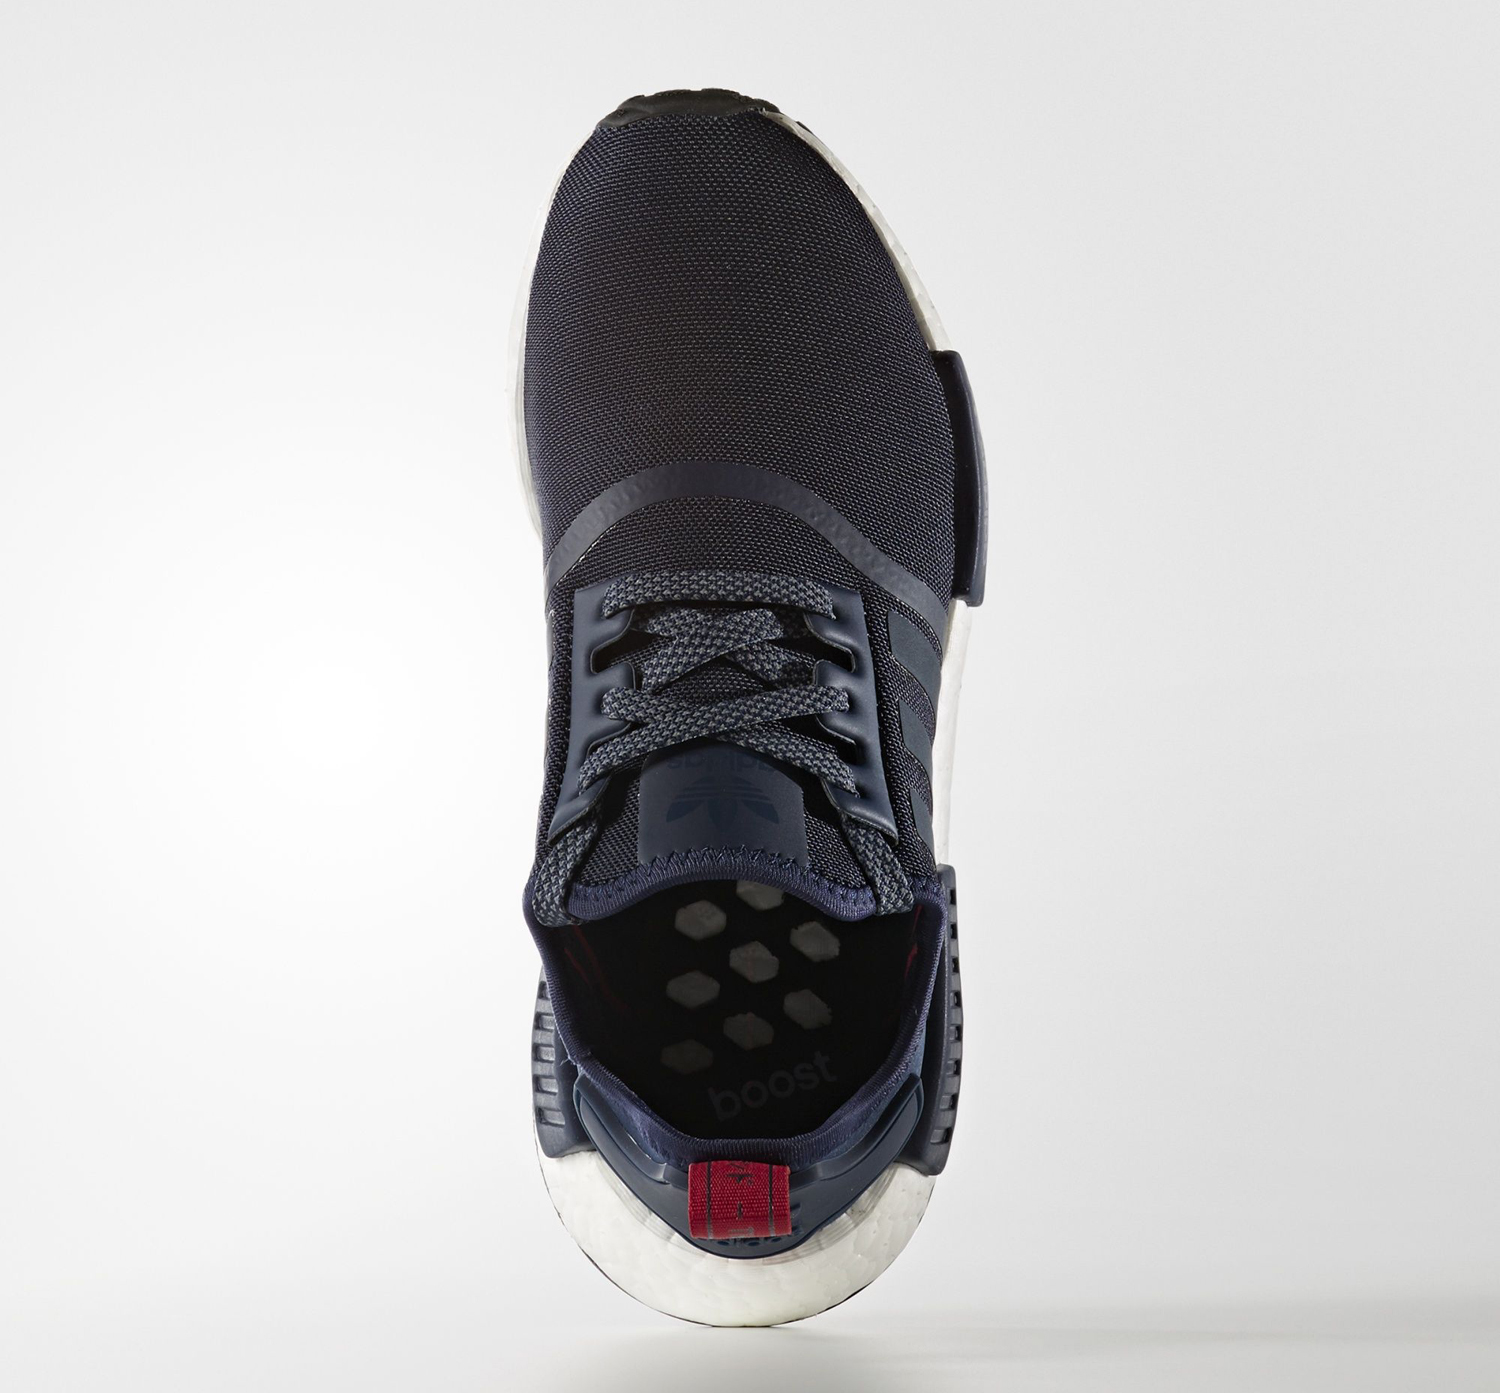 Adidas NMD Navy Suede Top